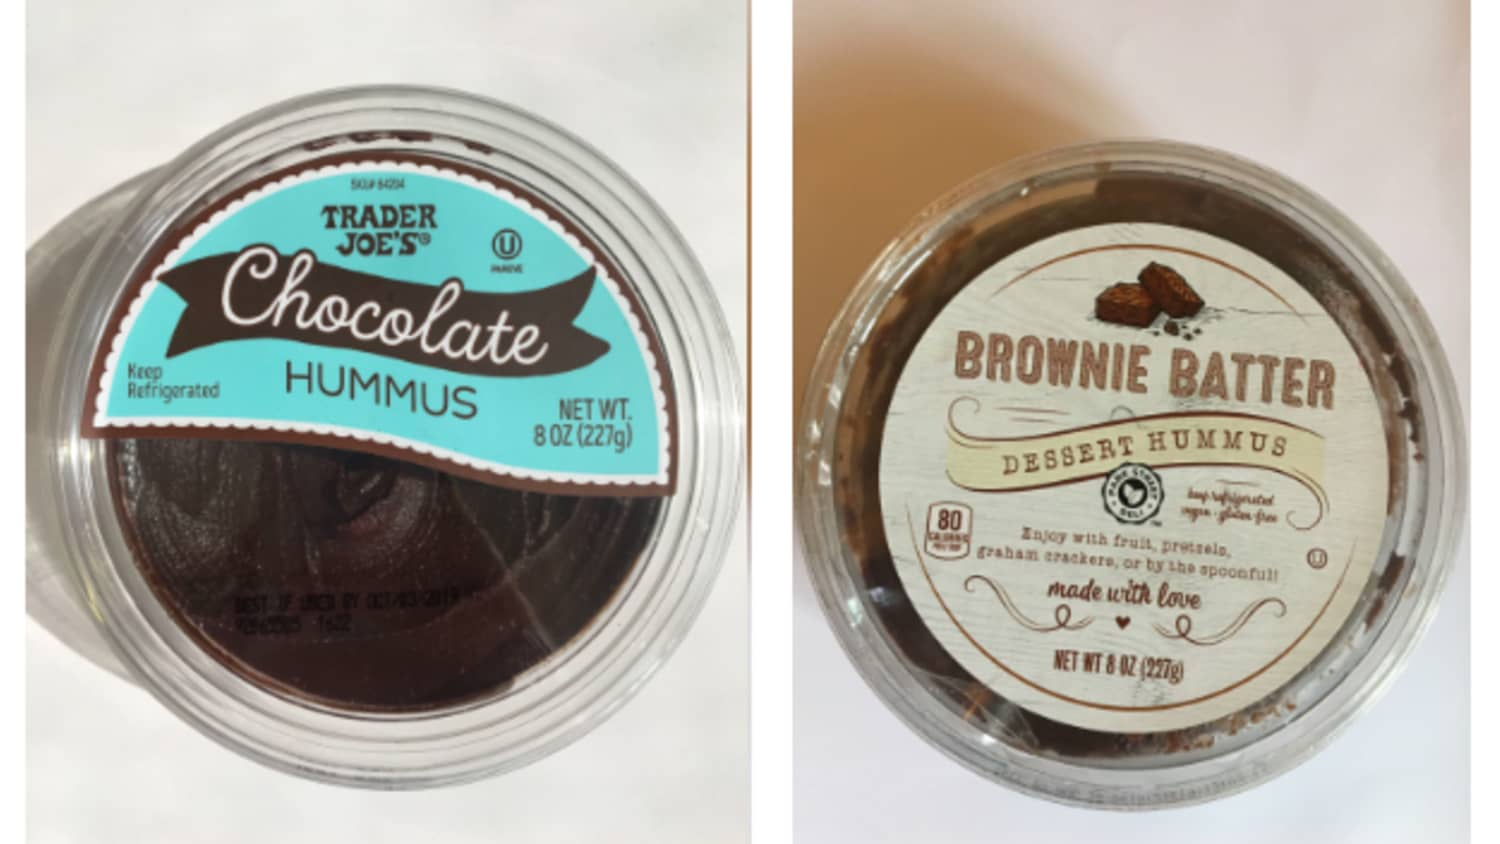 Trader Joe's Aldi - Chocolate Hummus Review | Kitchn on us map year, us map display, us map transparency, us map card, us map scrapbook, us map feature, us map country, us map banner, us map canvas, us map pattern, us map draw, us map star, us map format, us map track, us map watermark, us map postcard, us map title, us map paper, us map copy, us map number,